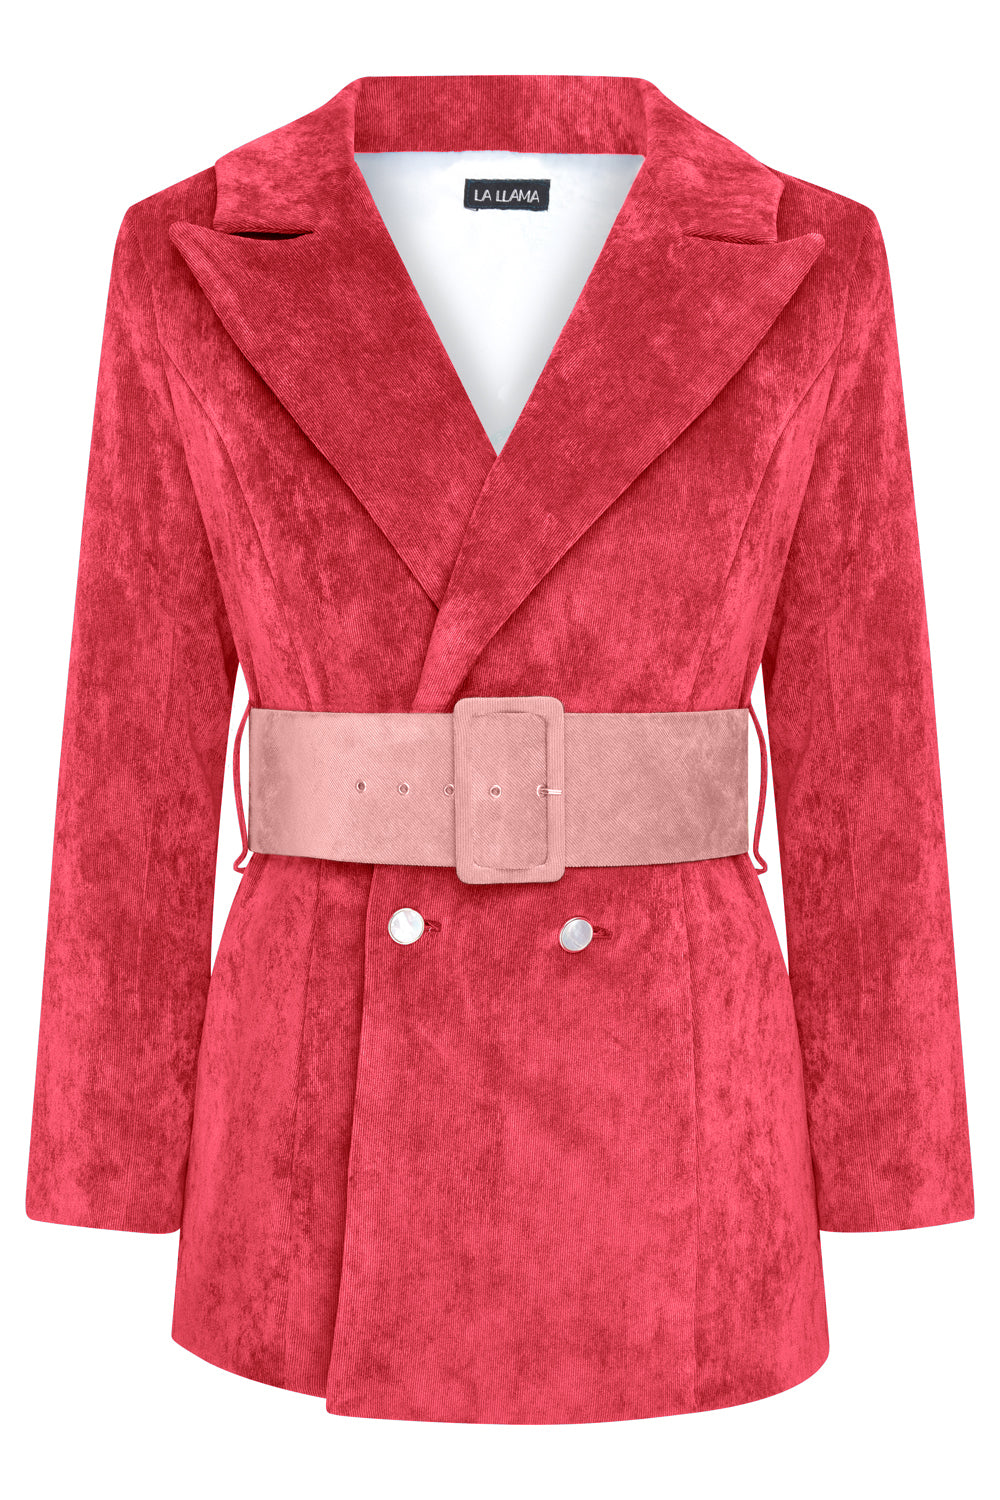 HYDRA BLAZER - RED WITH DUSKY PINK BELT